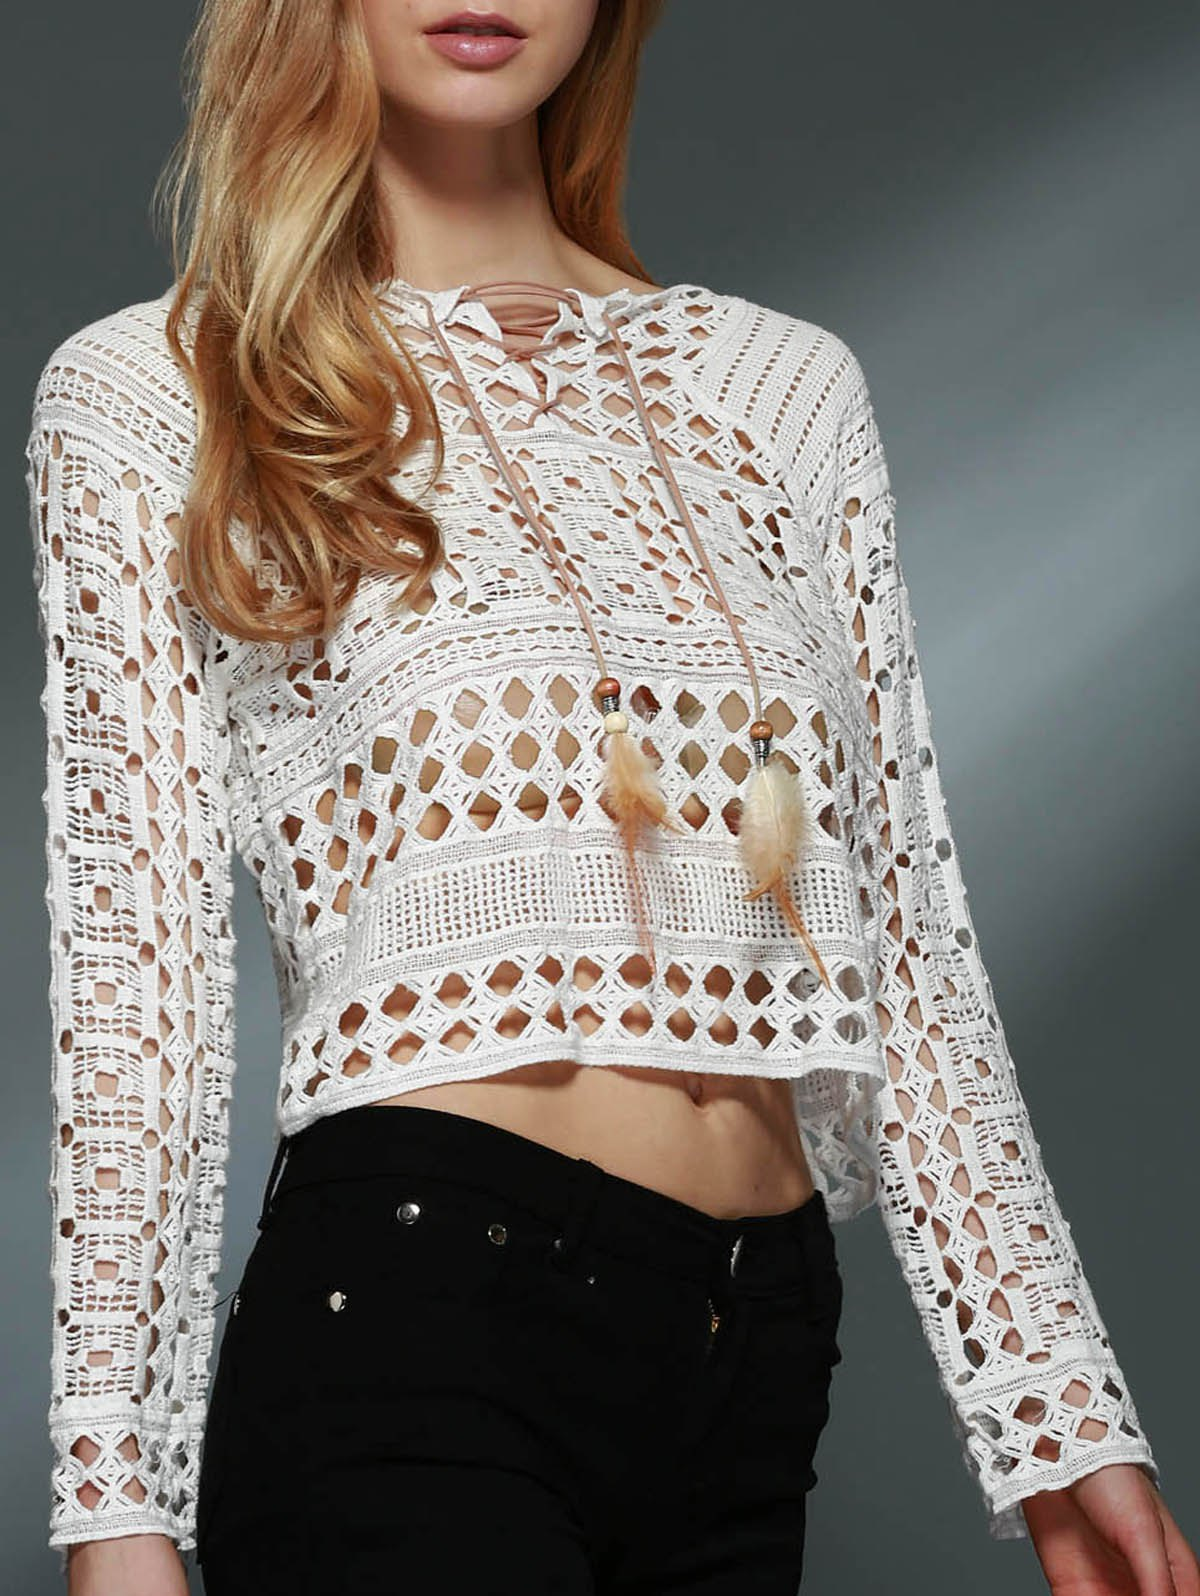 Stylish Round Neck Long Sleeve Lace-Up Hollow Out Women's Blouse - WHITE ONE SIZE(FIT SIZE XS TO M)